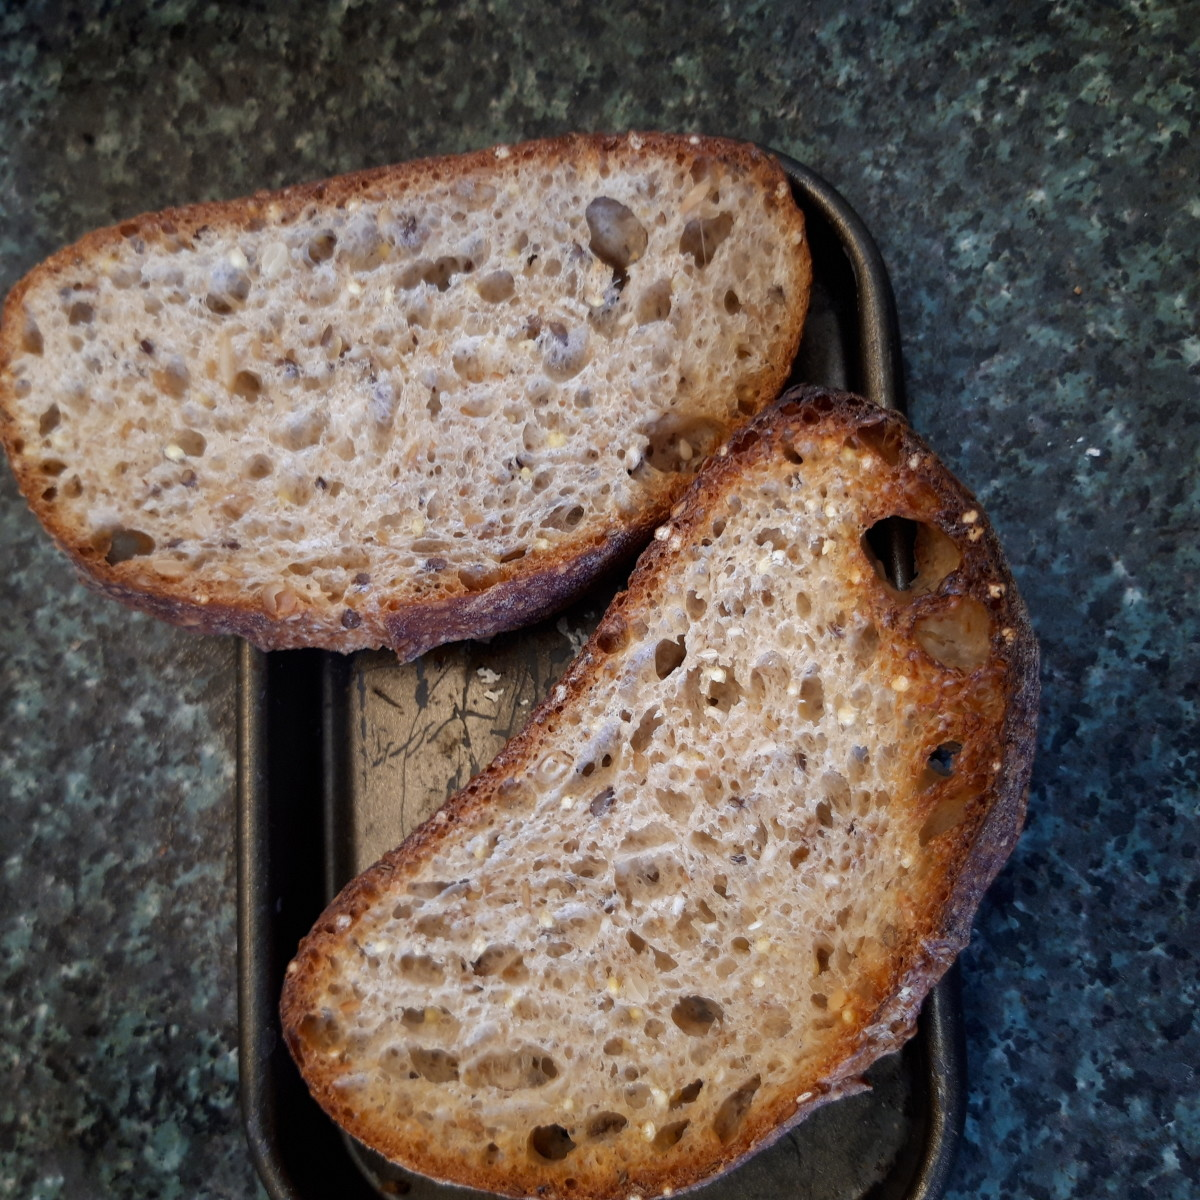 These dampened and baked slices of bread are still very crunchy on the crust, but the insides are soft.